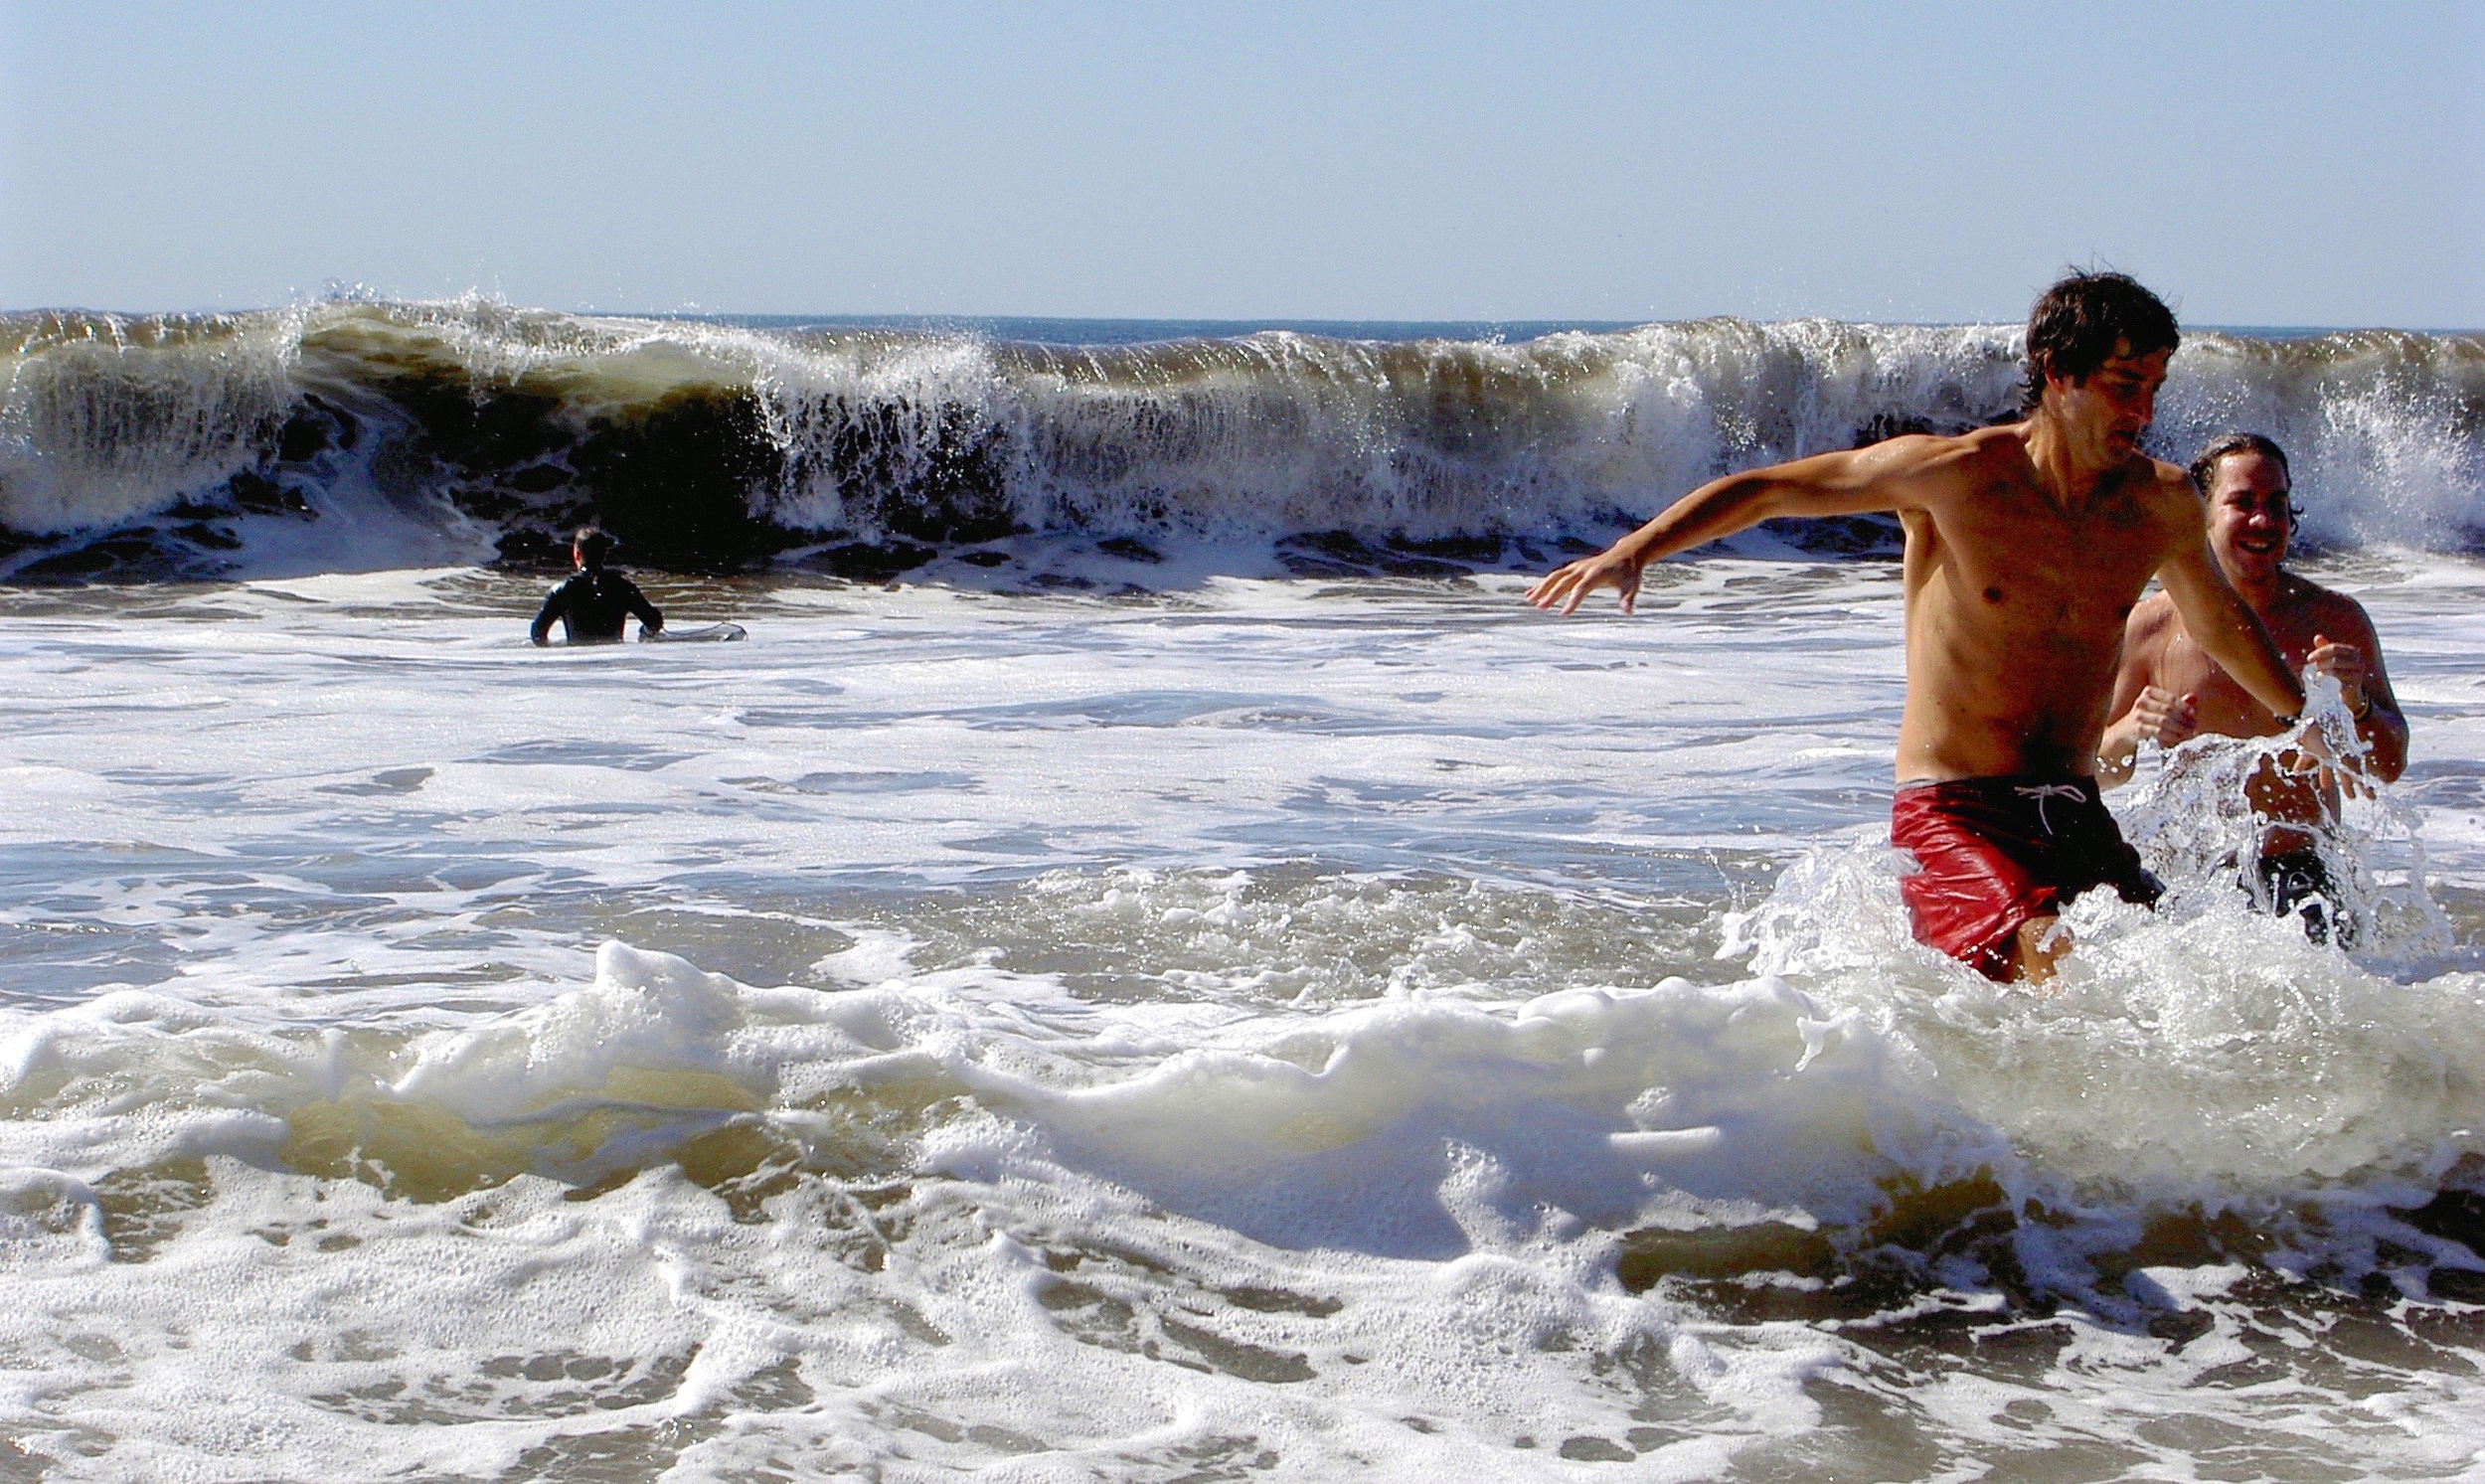 Boogie boarders test their mettle at Stinson Beach.